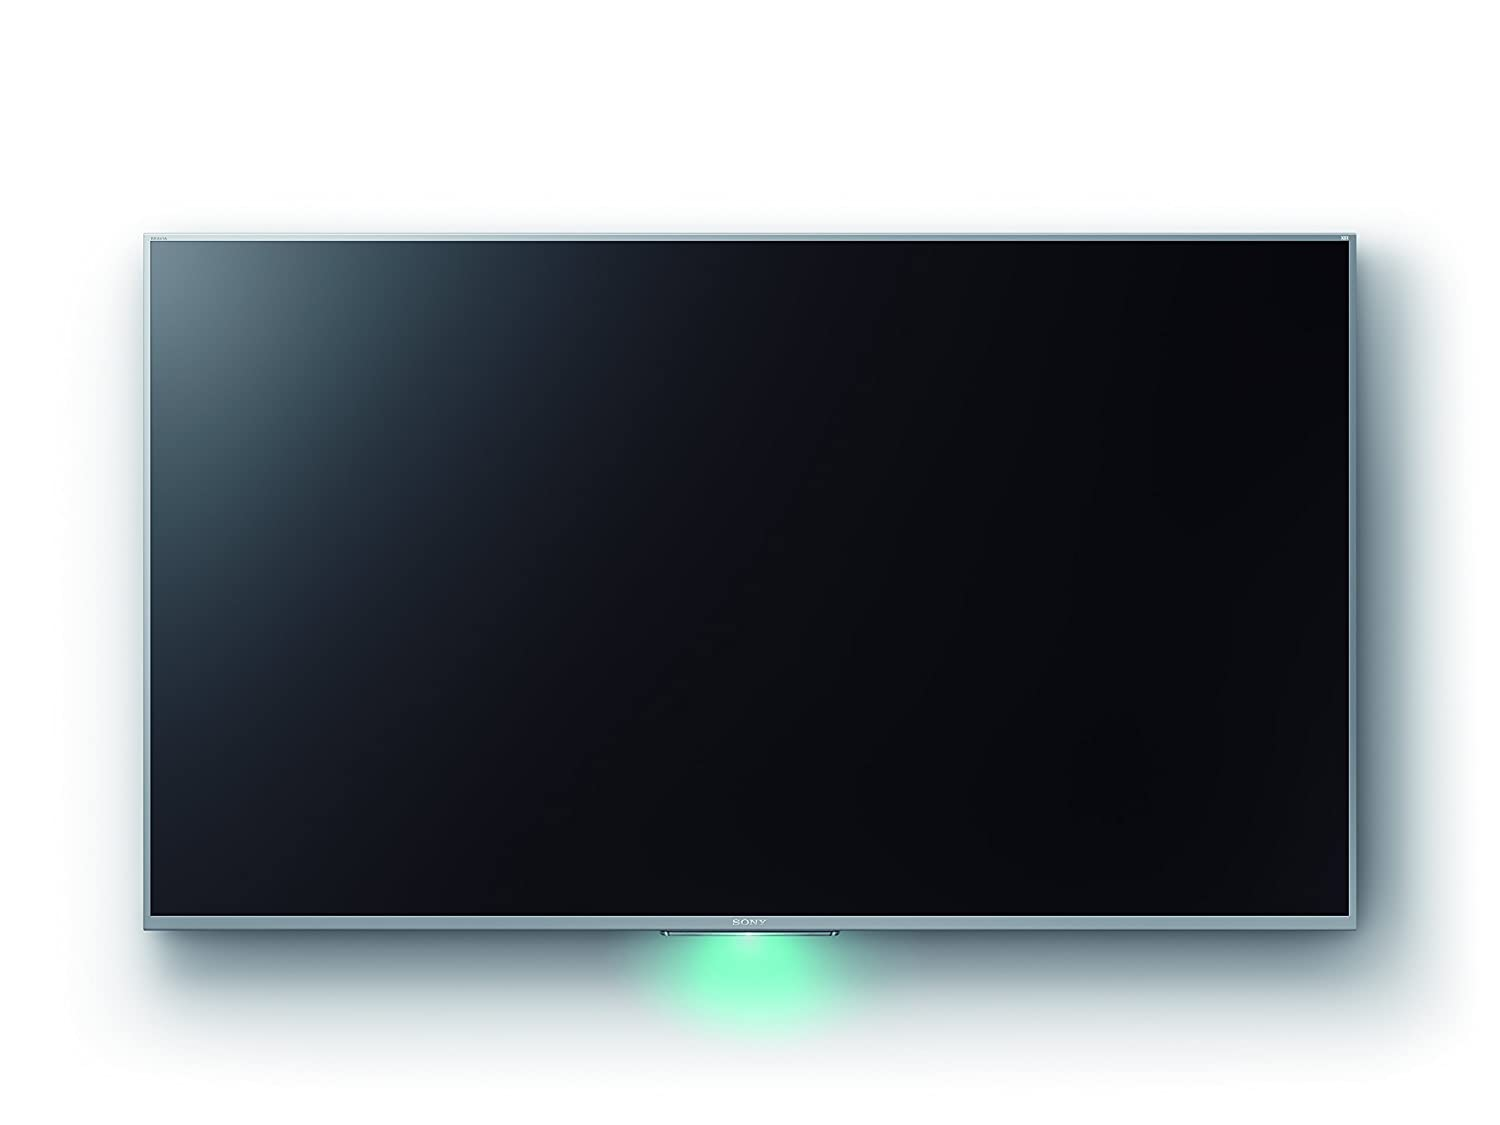 Sony BRAVIA XBR-55X800B HDTV Drivers Download Free